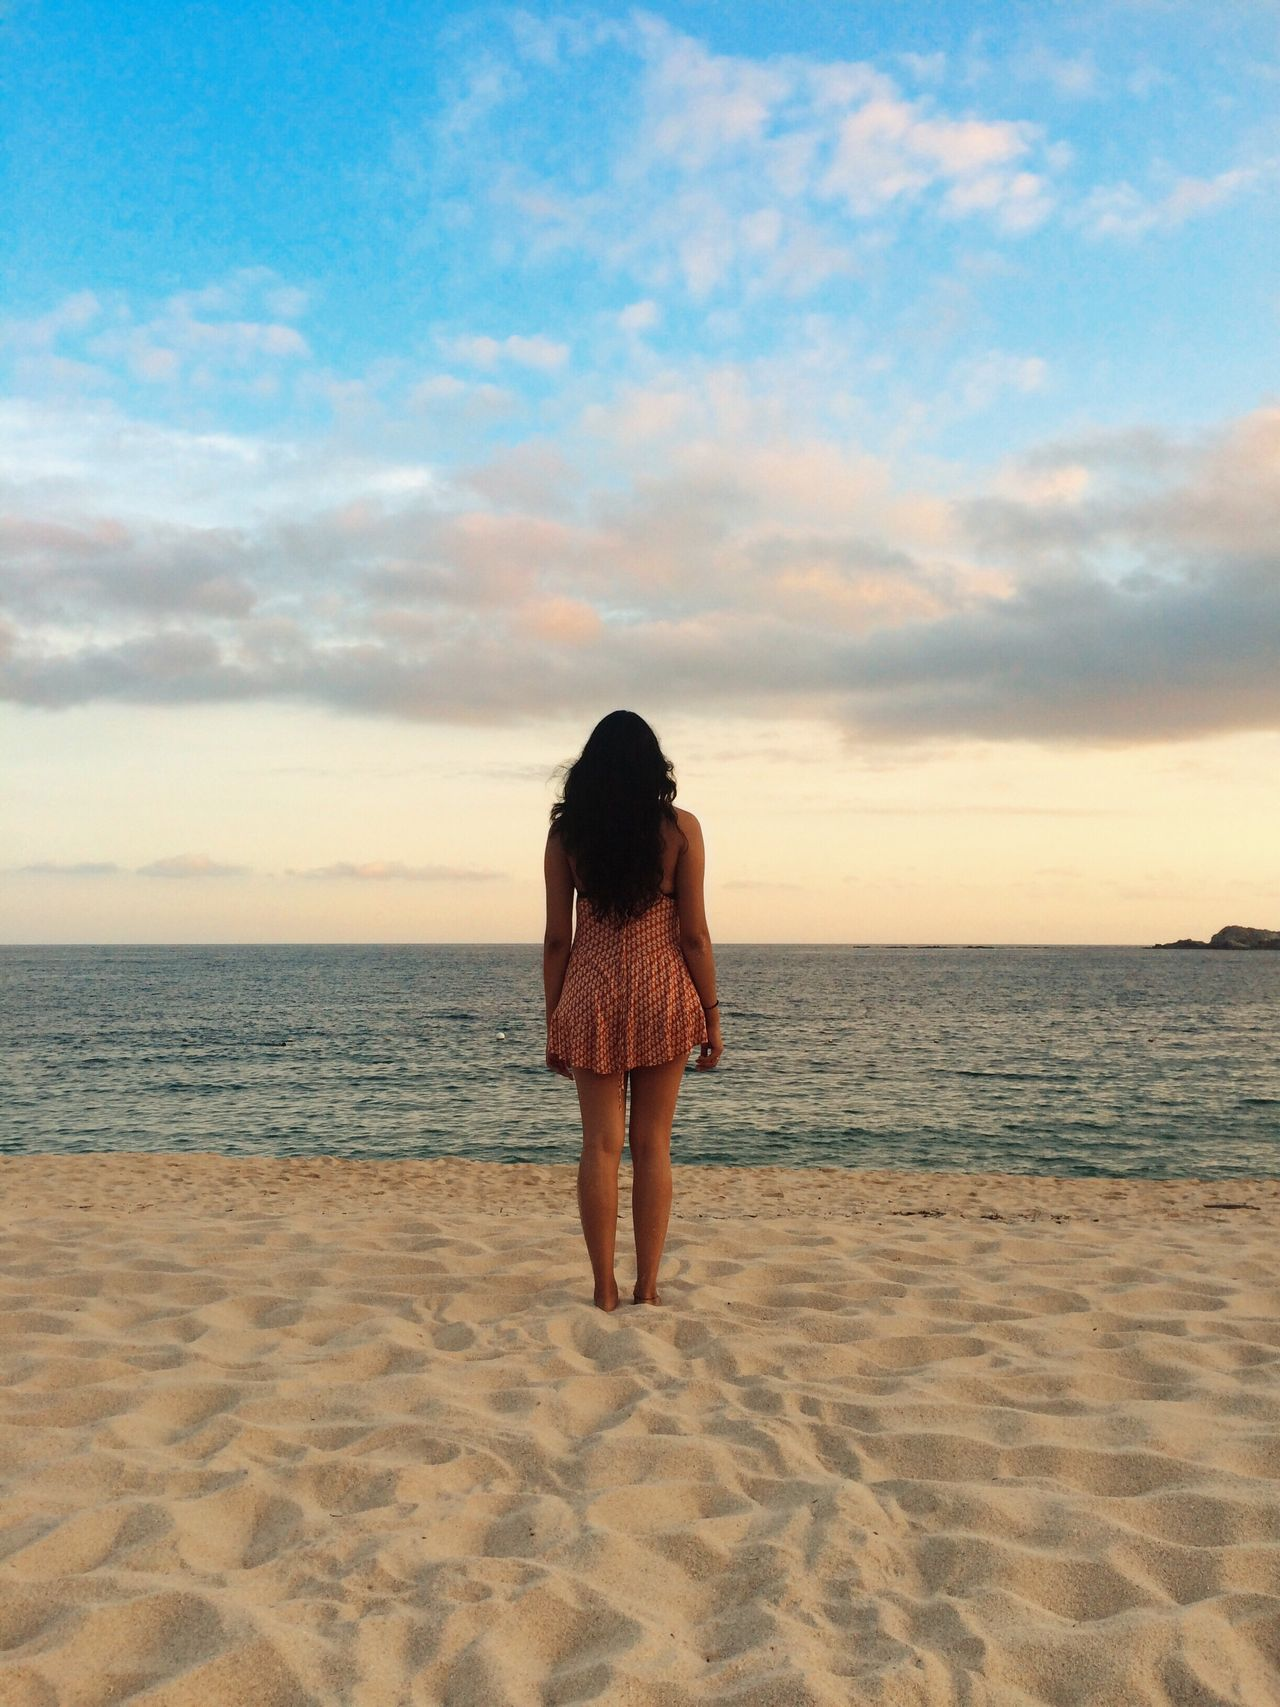 Bahía Chahue One Person Beach Sea Sky Nature Cloud - Sky Beauty In Nature Tranquility Horizon Over Water Tranquil Scene Lifestyles People Of EyeEm Vscophile EyeEm Best Edits EyeEm Best Shots EyeEm Nature Lover Eye4photography  Mexico VSCO Cam VSCO Vscogood